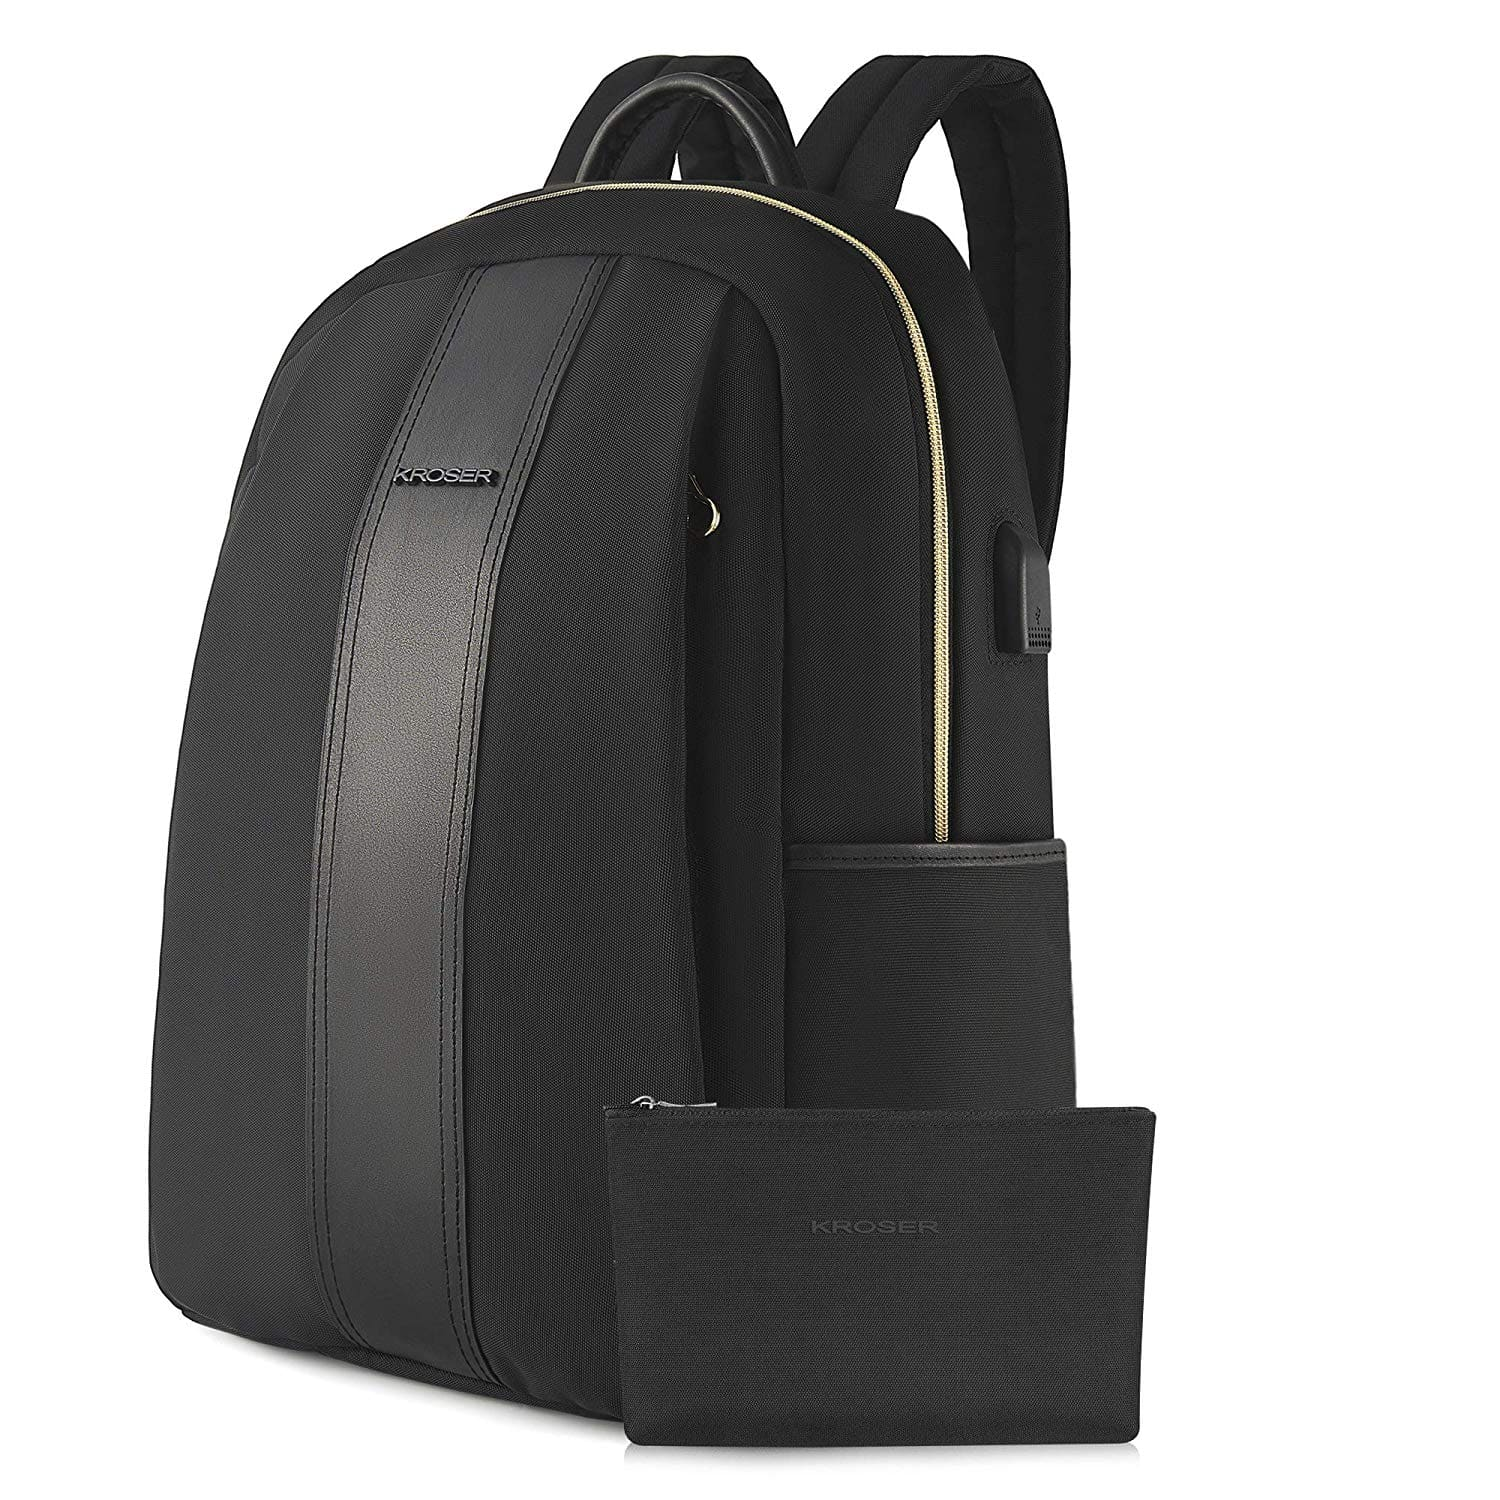 Laptop Backpack 15.6 Inch Computer Backpack - $20.99